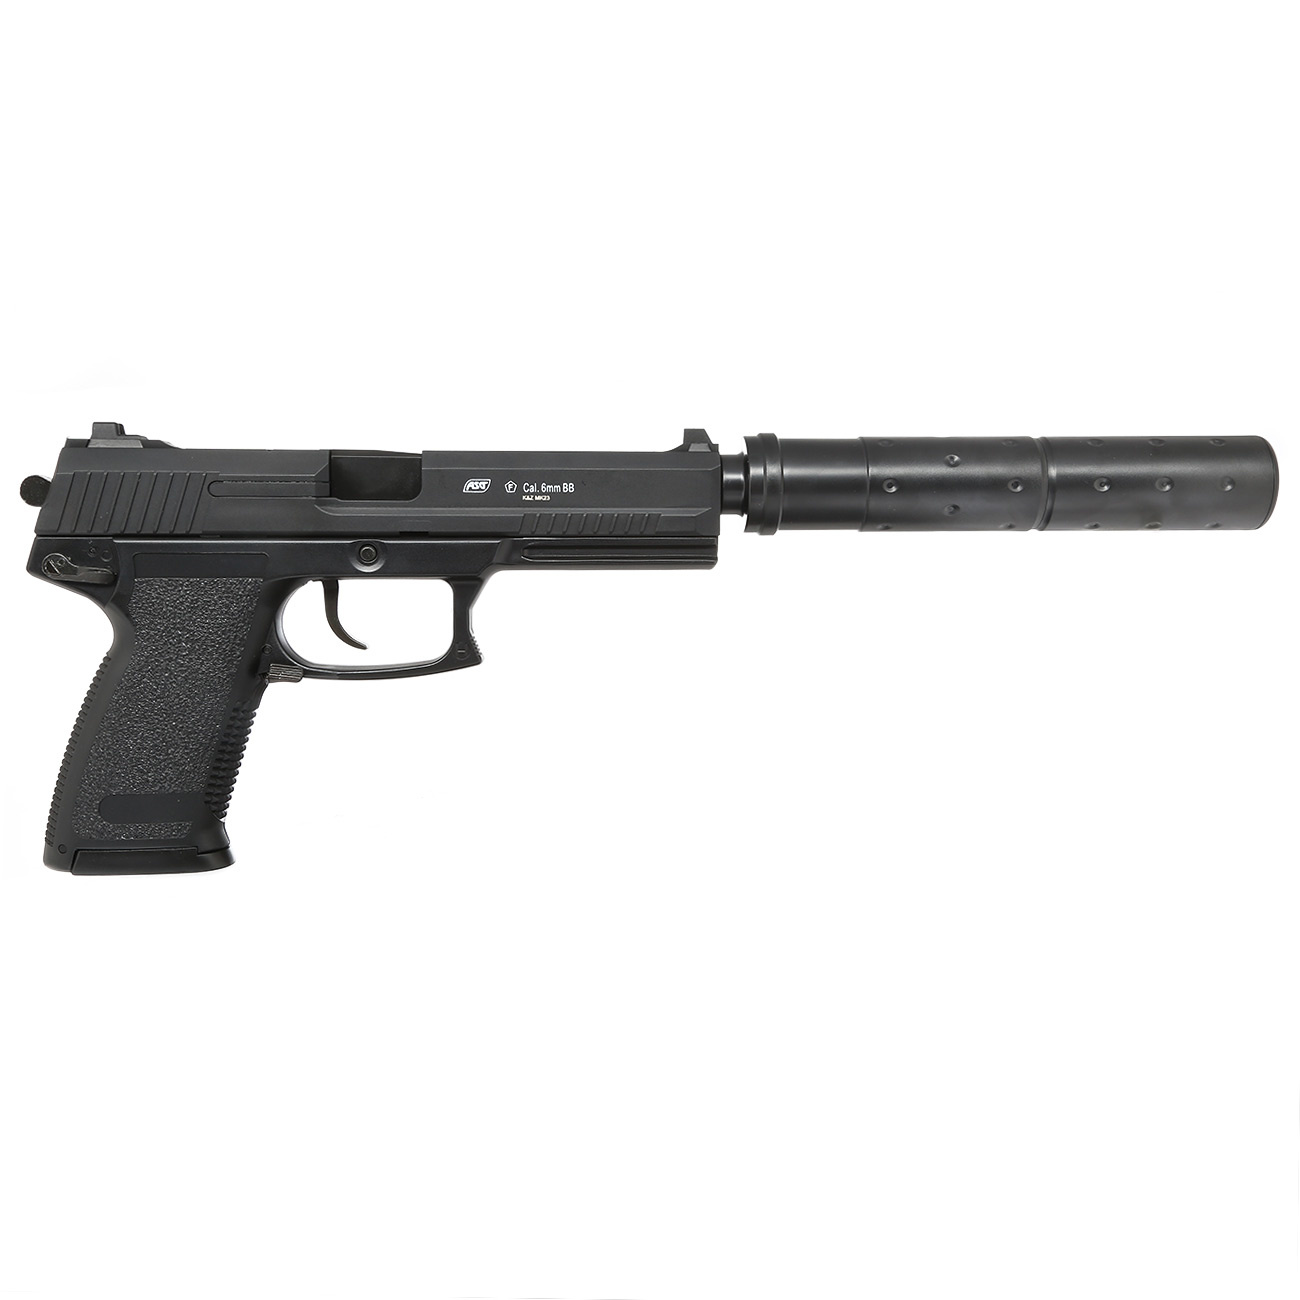 ASG MK23 Special Operations with Silencer Gas NBB 1.5 Joule - BK